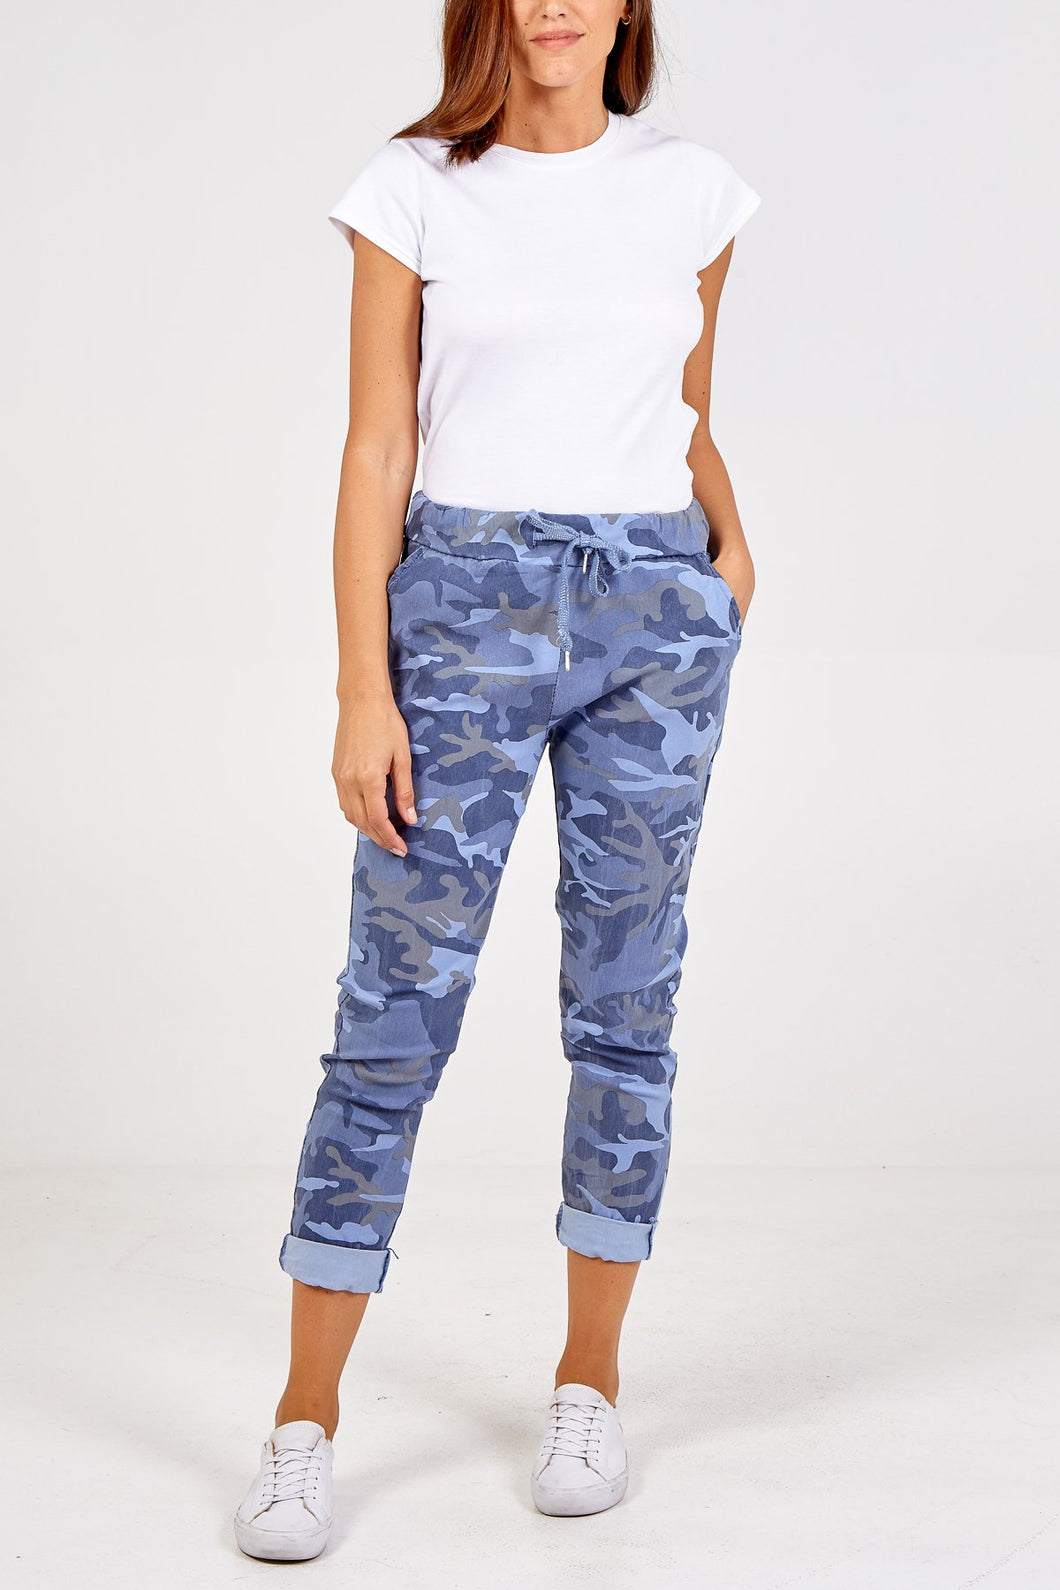 CAMOFLAGE MAGIC TROUSERS CHOOSE FROM 5 COLOURS